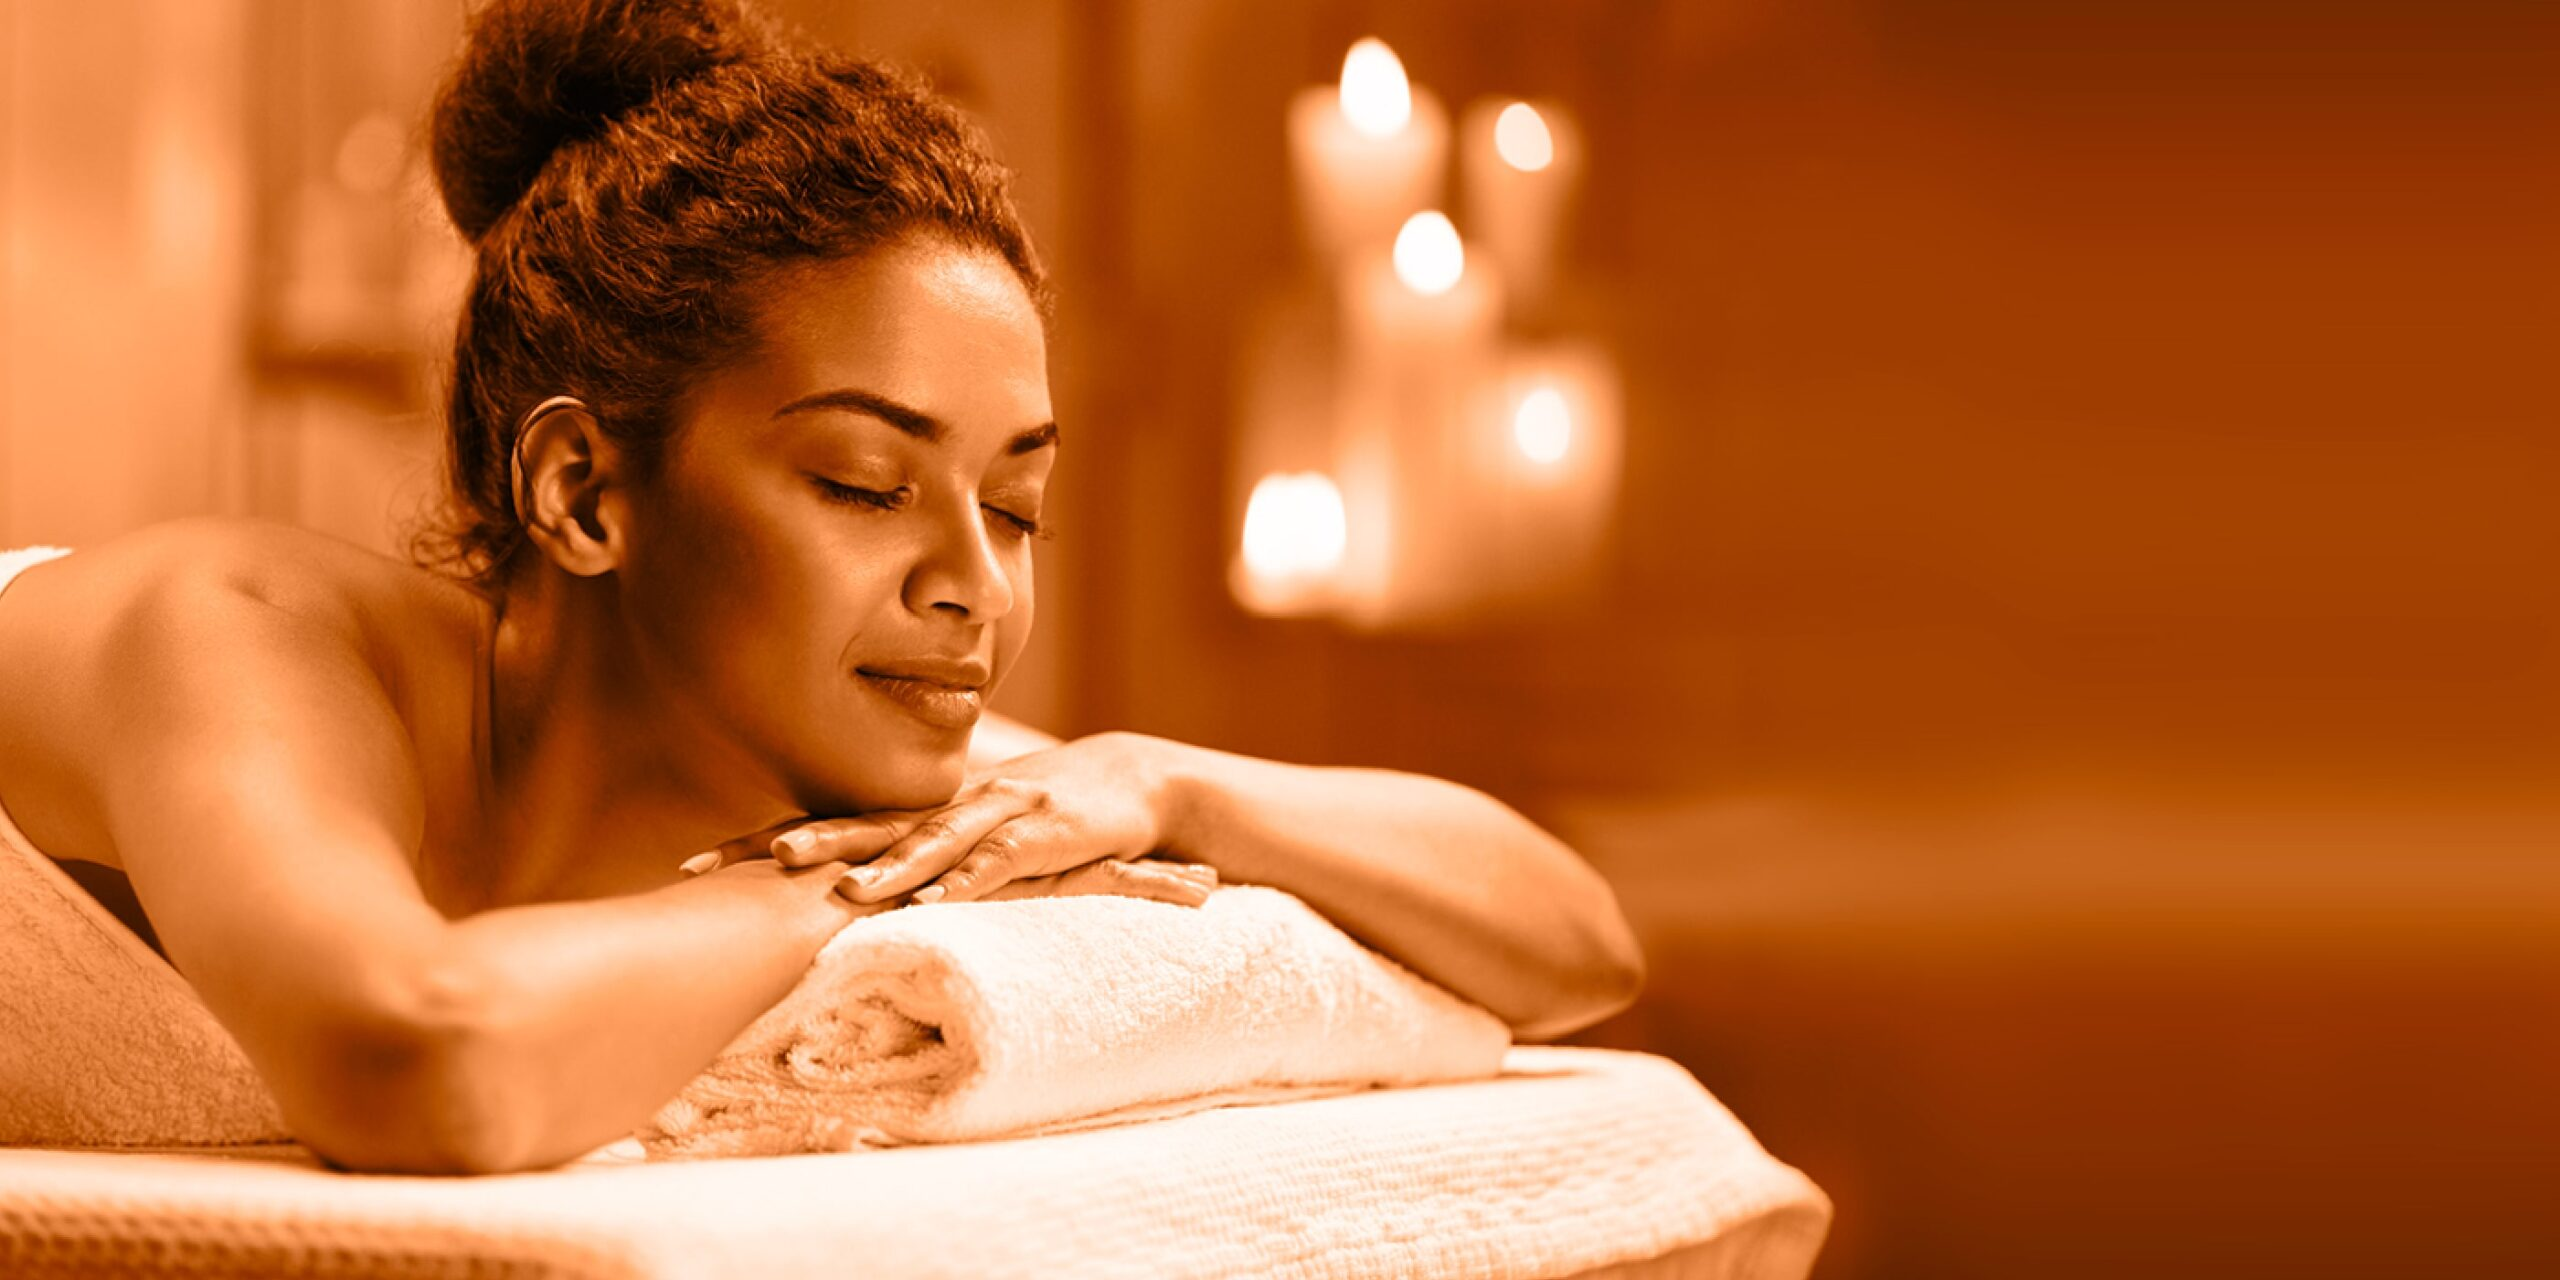 Sports massages vs. Relaxation Massages: The Difference